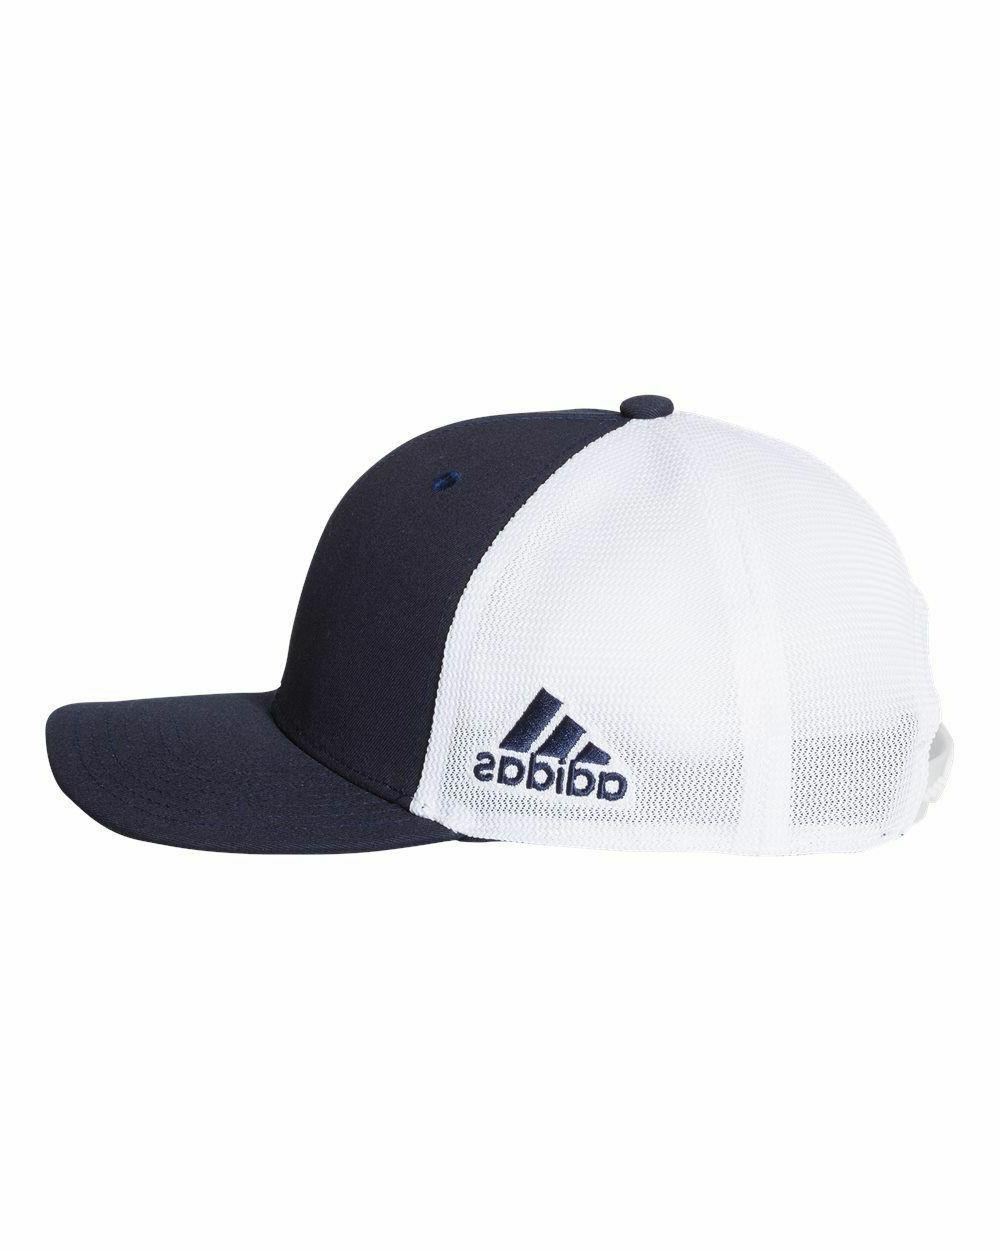 ADIDAS GOLF Mesh Baseball UNISEX SIZES